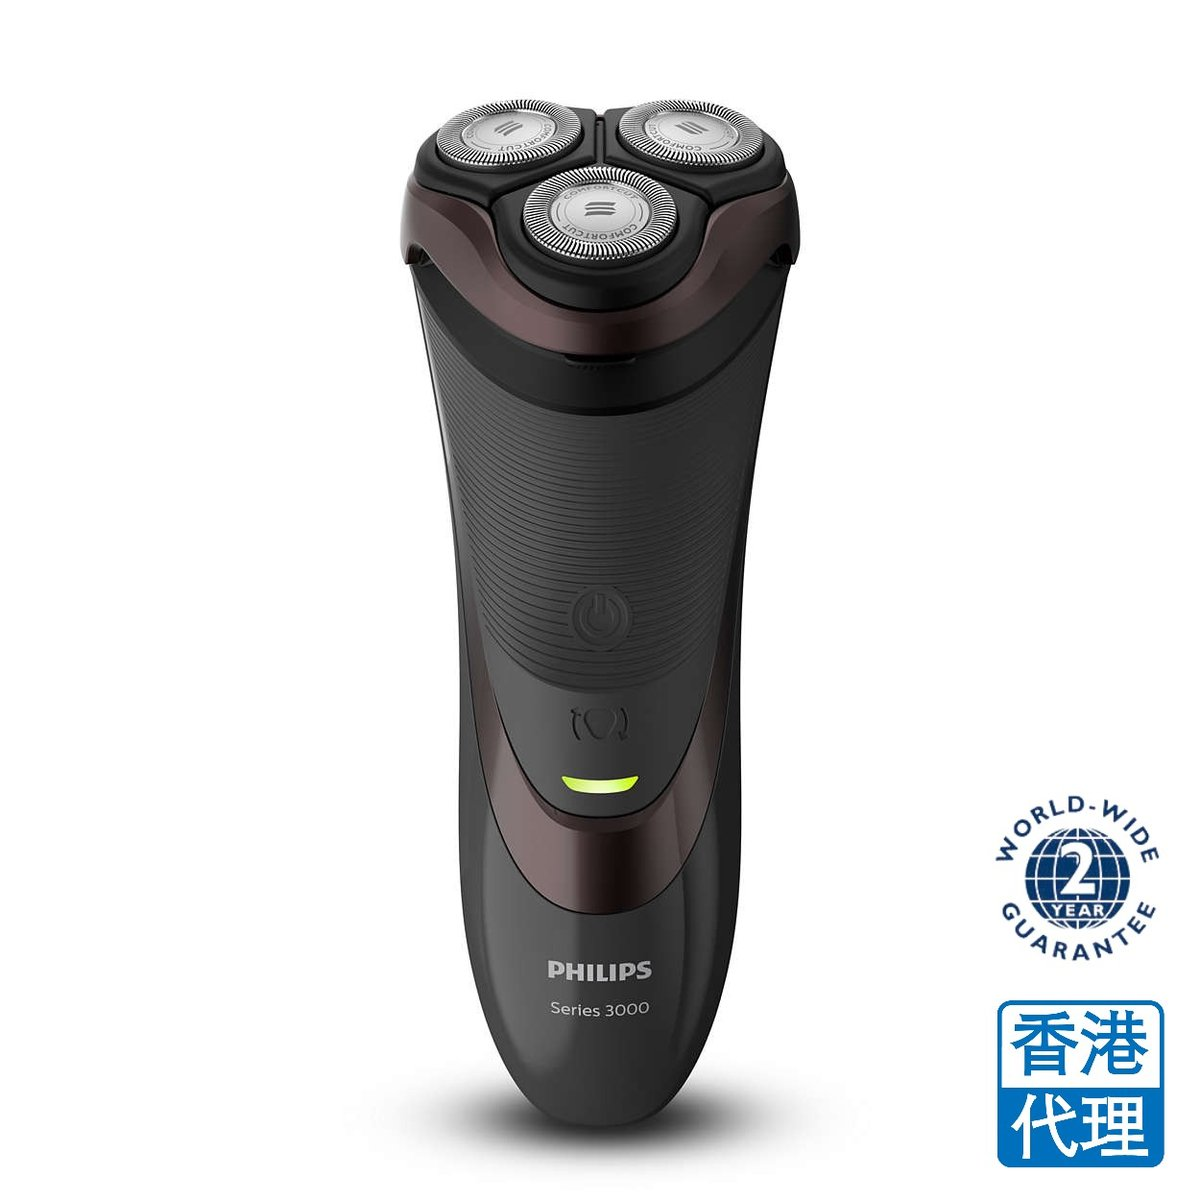 Philipps Online Shop Philips Shaver Series 3000 S3520 Hktvmall Online Shopping